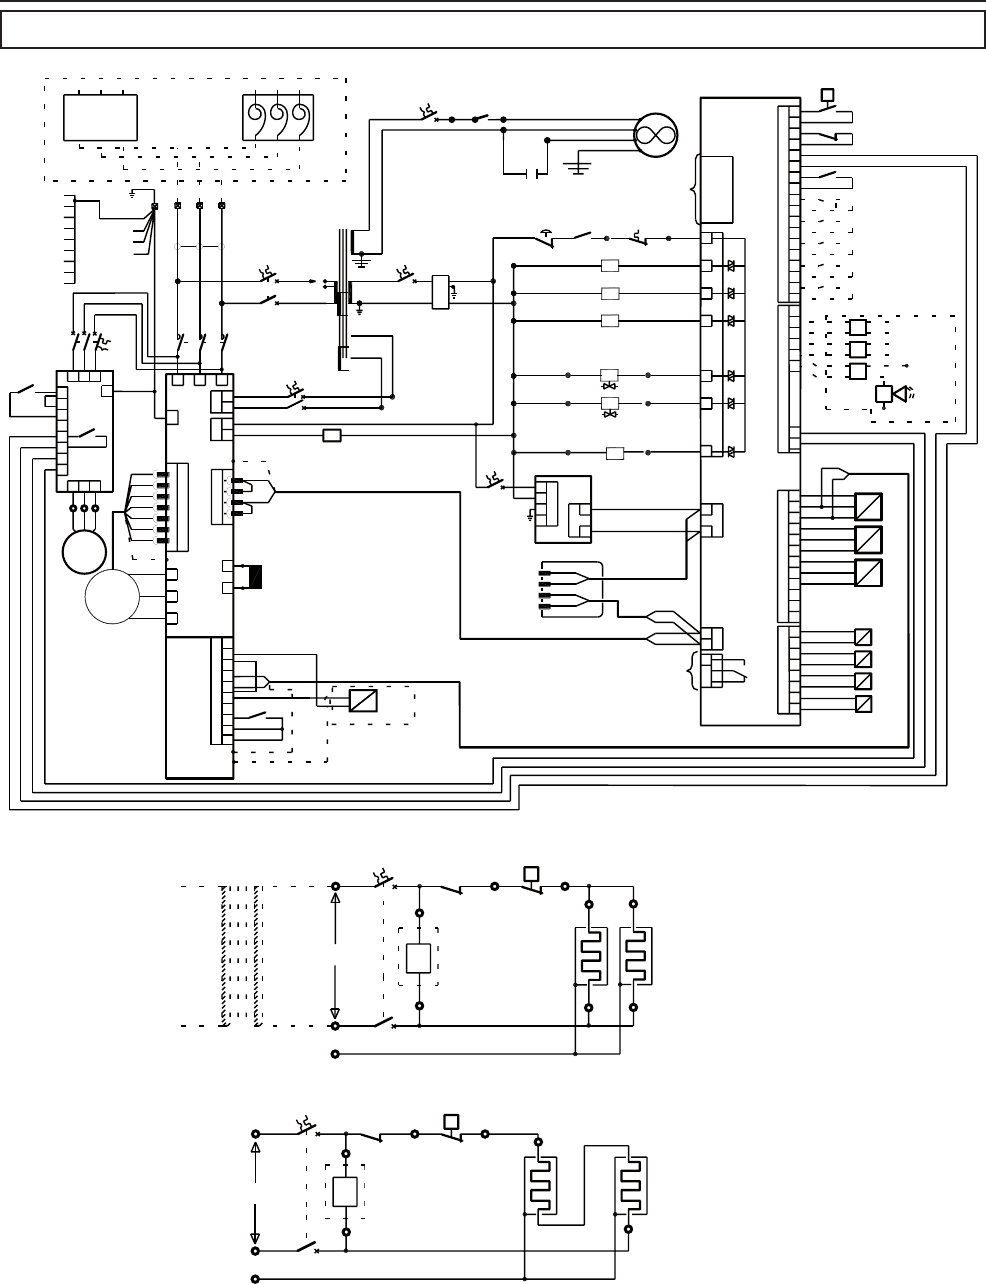 ingersoll rand air compressor electrical diagram